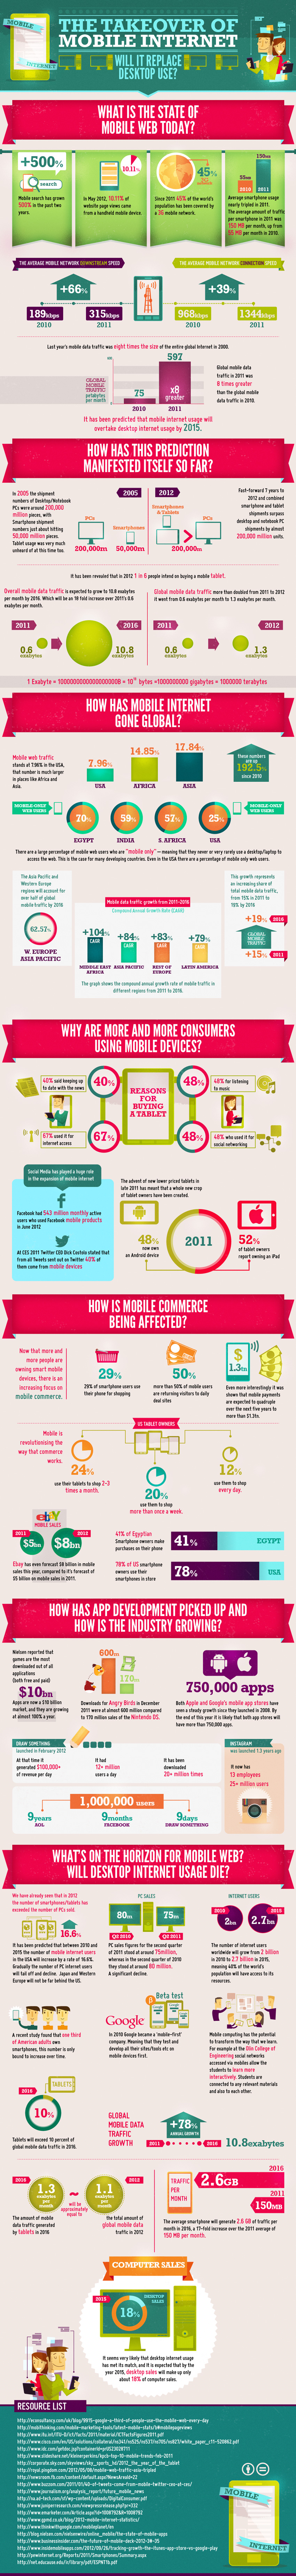 mobile internet infographic version 2 edit Will Mobile Internet Replace Desktop Use? [Infographic]